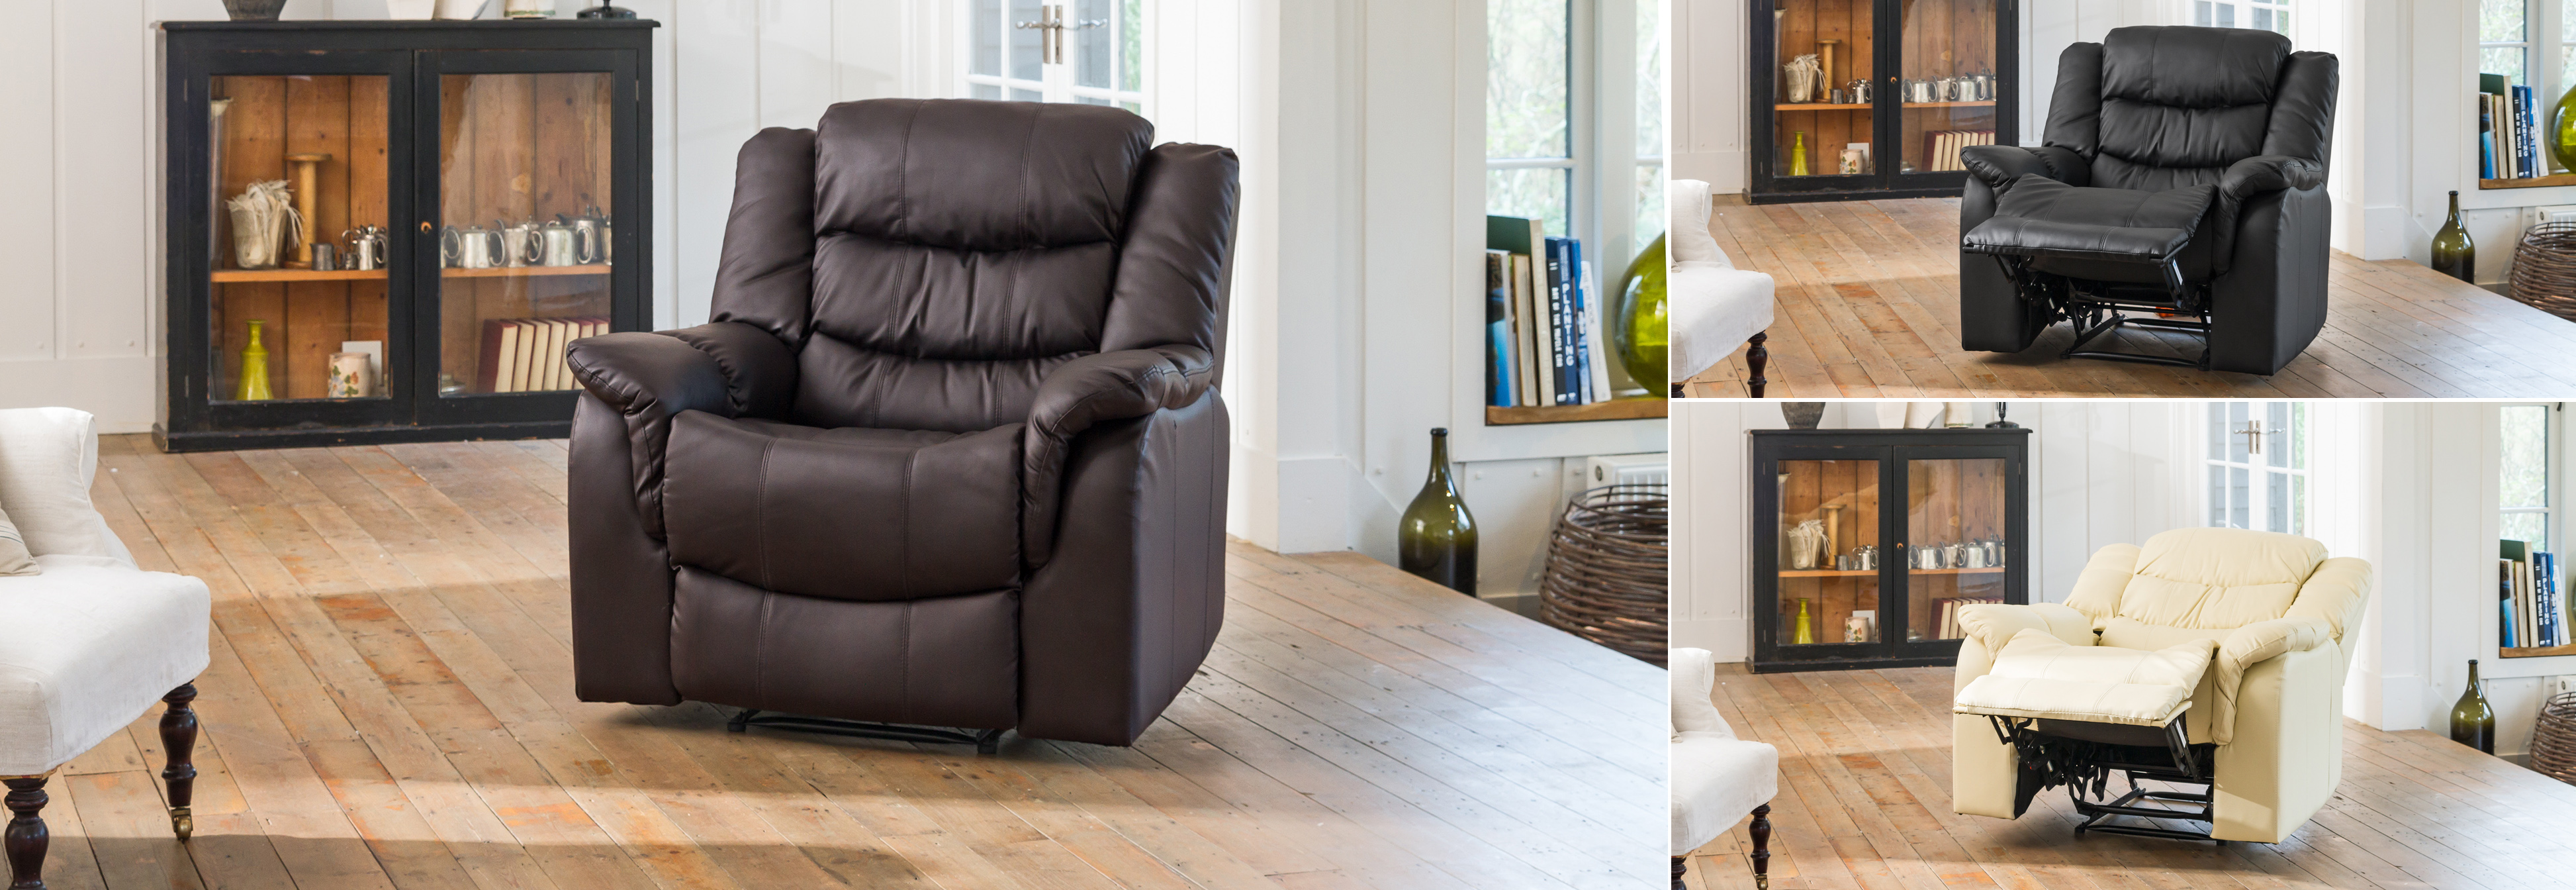 Kilcreene Reclining Chair  brown